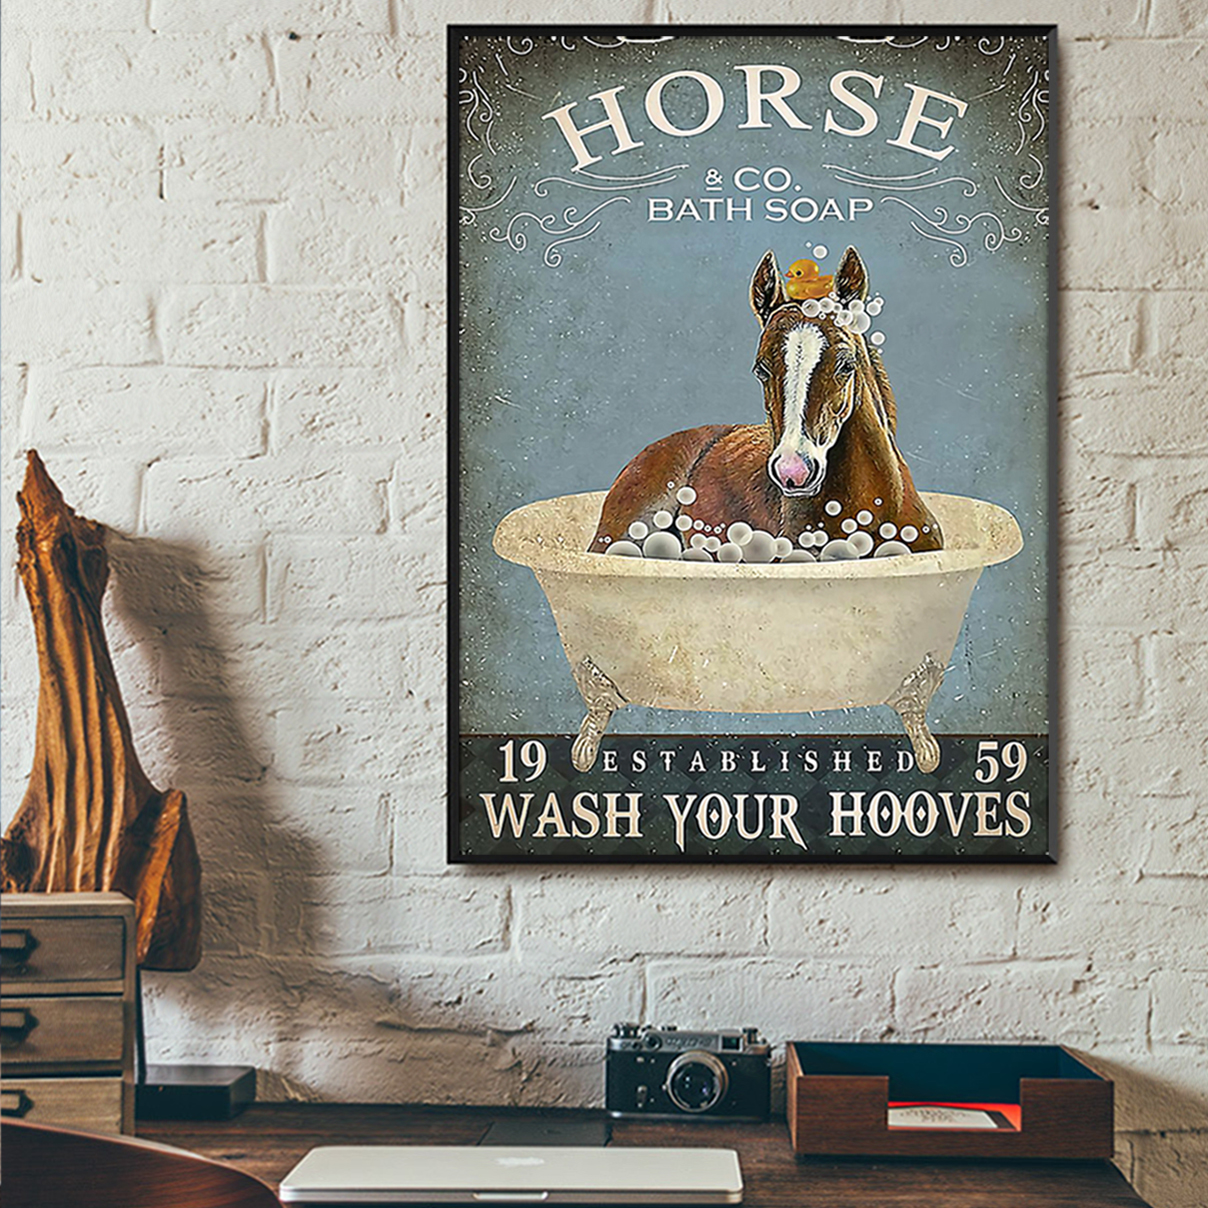 Horse and co bath soap wash your hooves poster A3